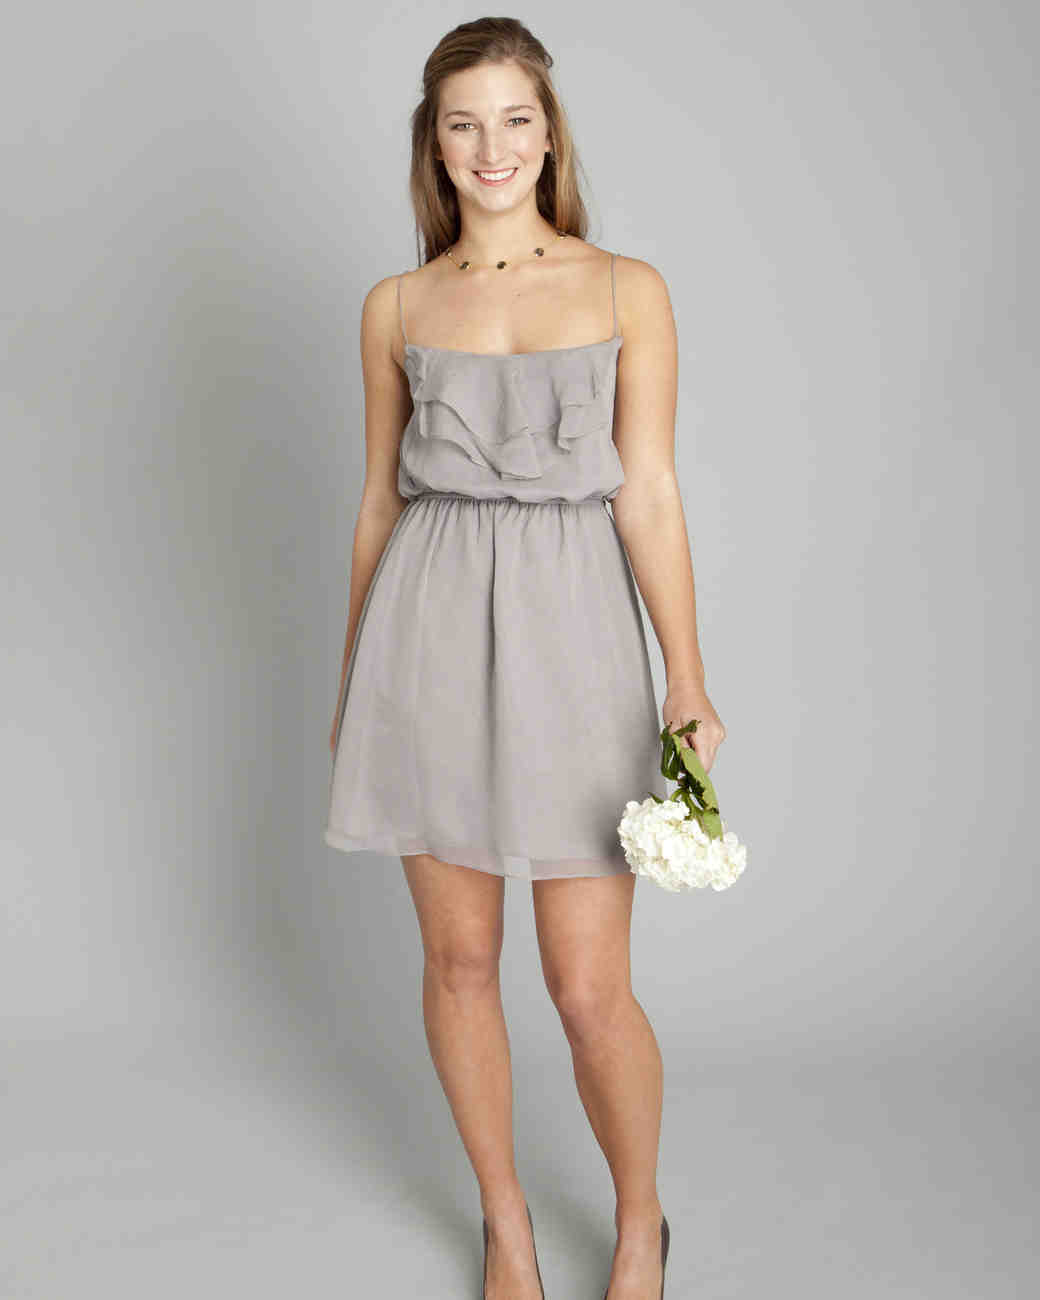 Bridesmaid dresses for beach weddings martha stewart weddings coren moore junglespirit Choice Image